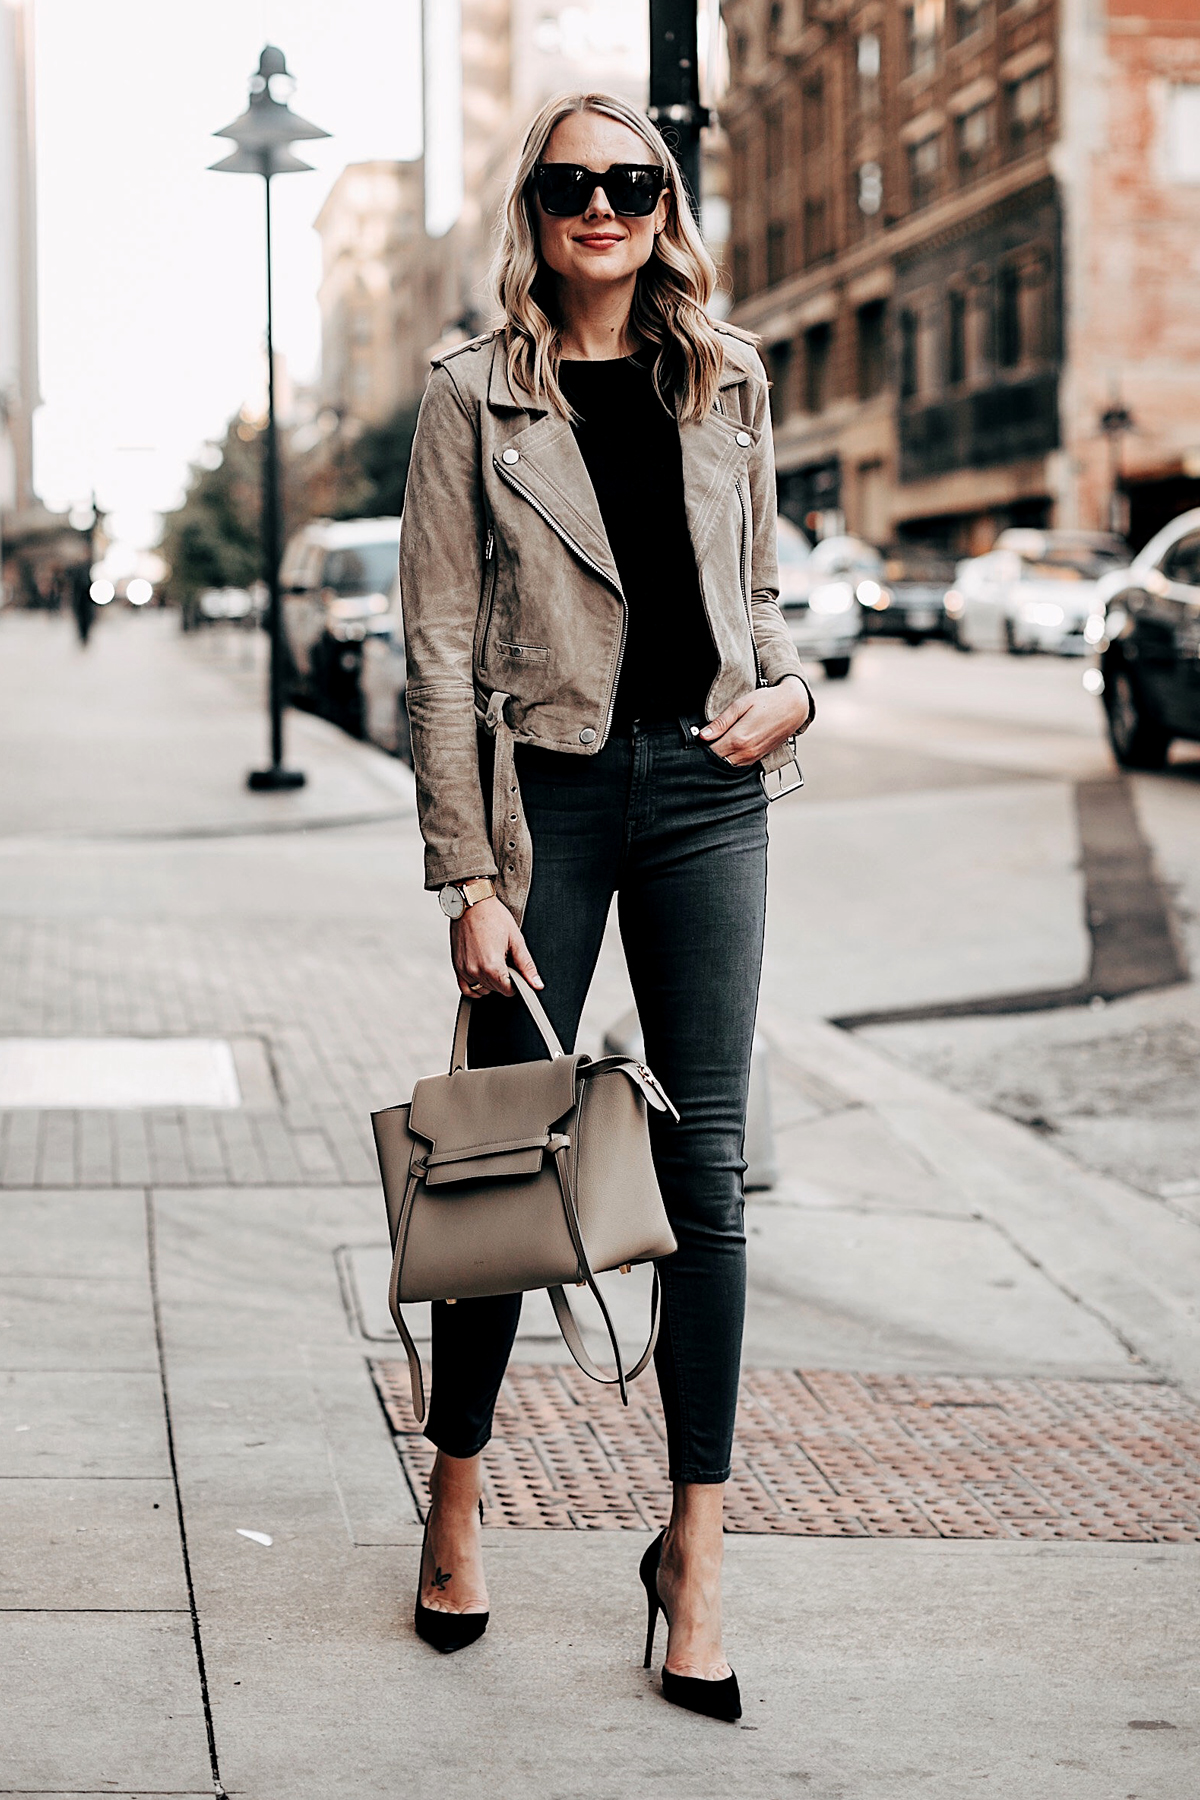 Fashion Jackson Weargin Blankny Tan Suede Moto Jacket Black Tshirt Grey Skinny Jeans Black Pumps